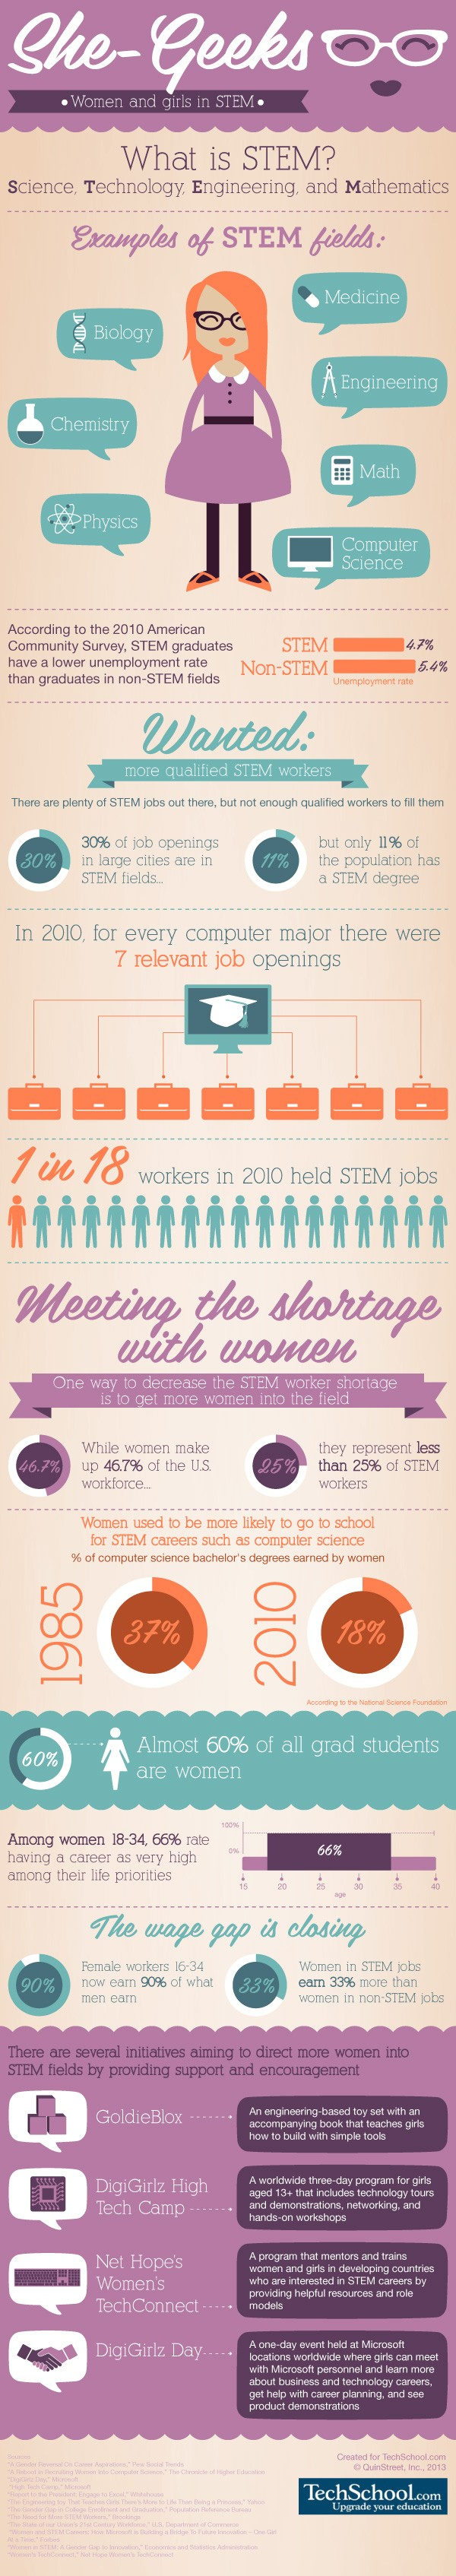 She-Geek infographic - Women in STEM